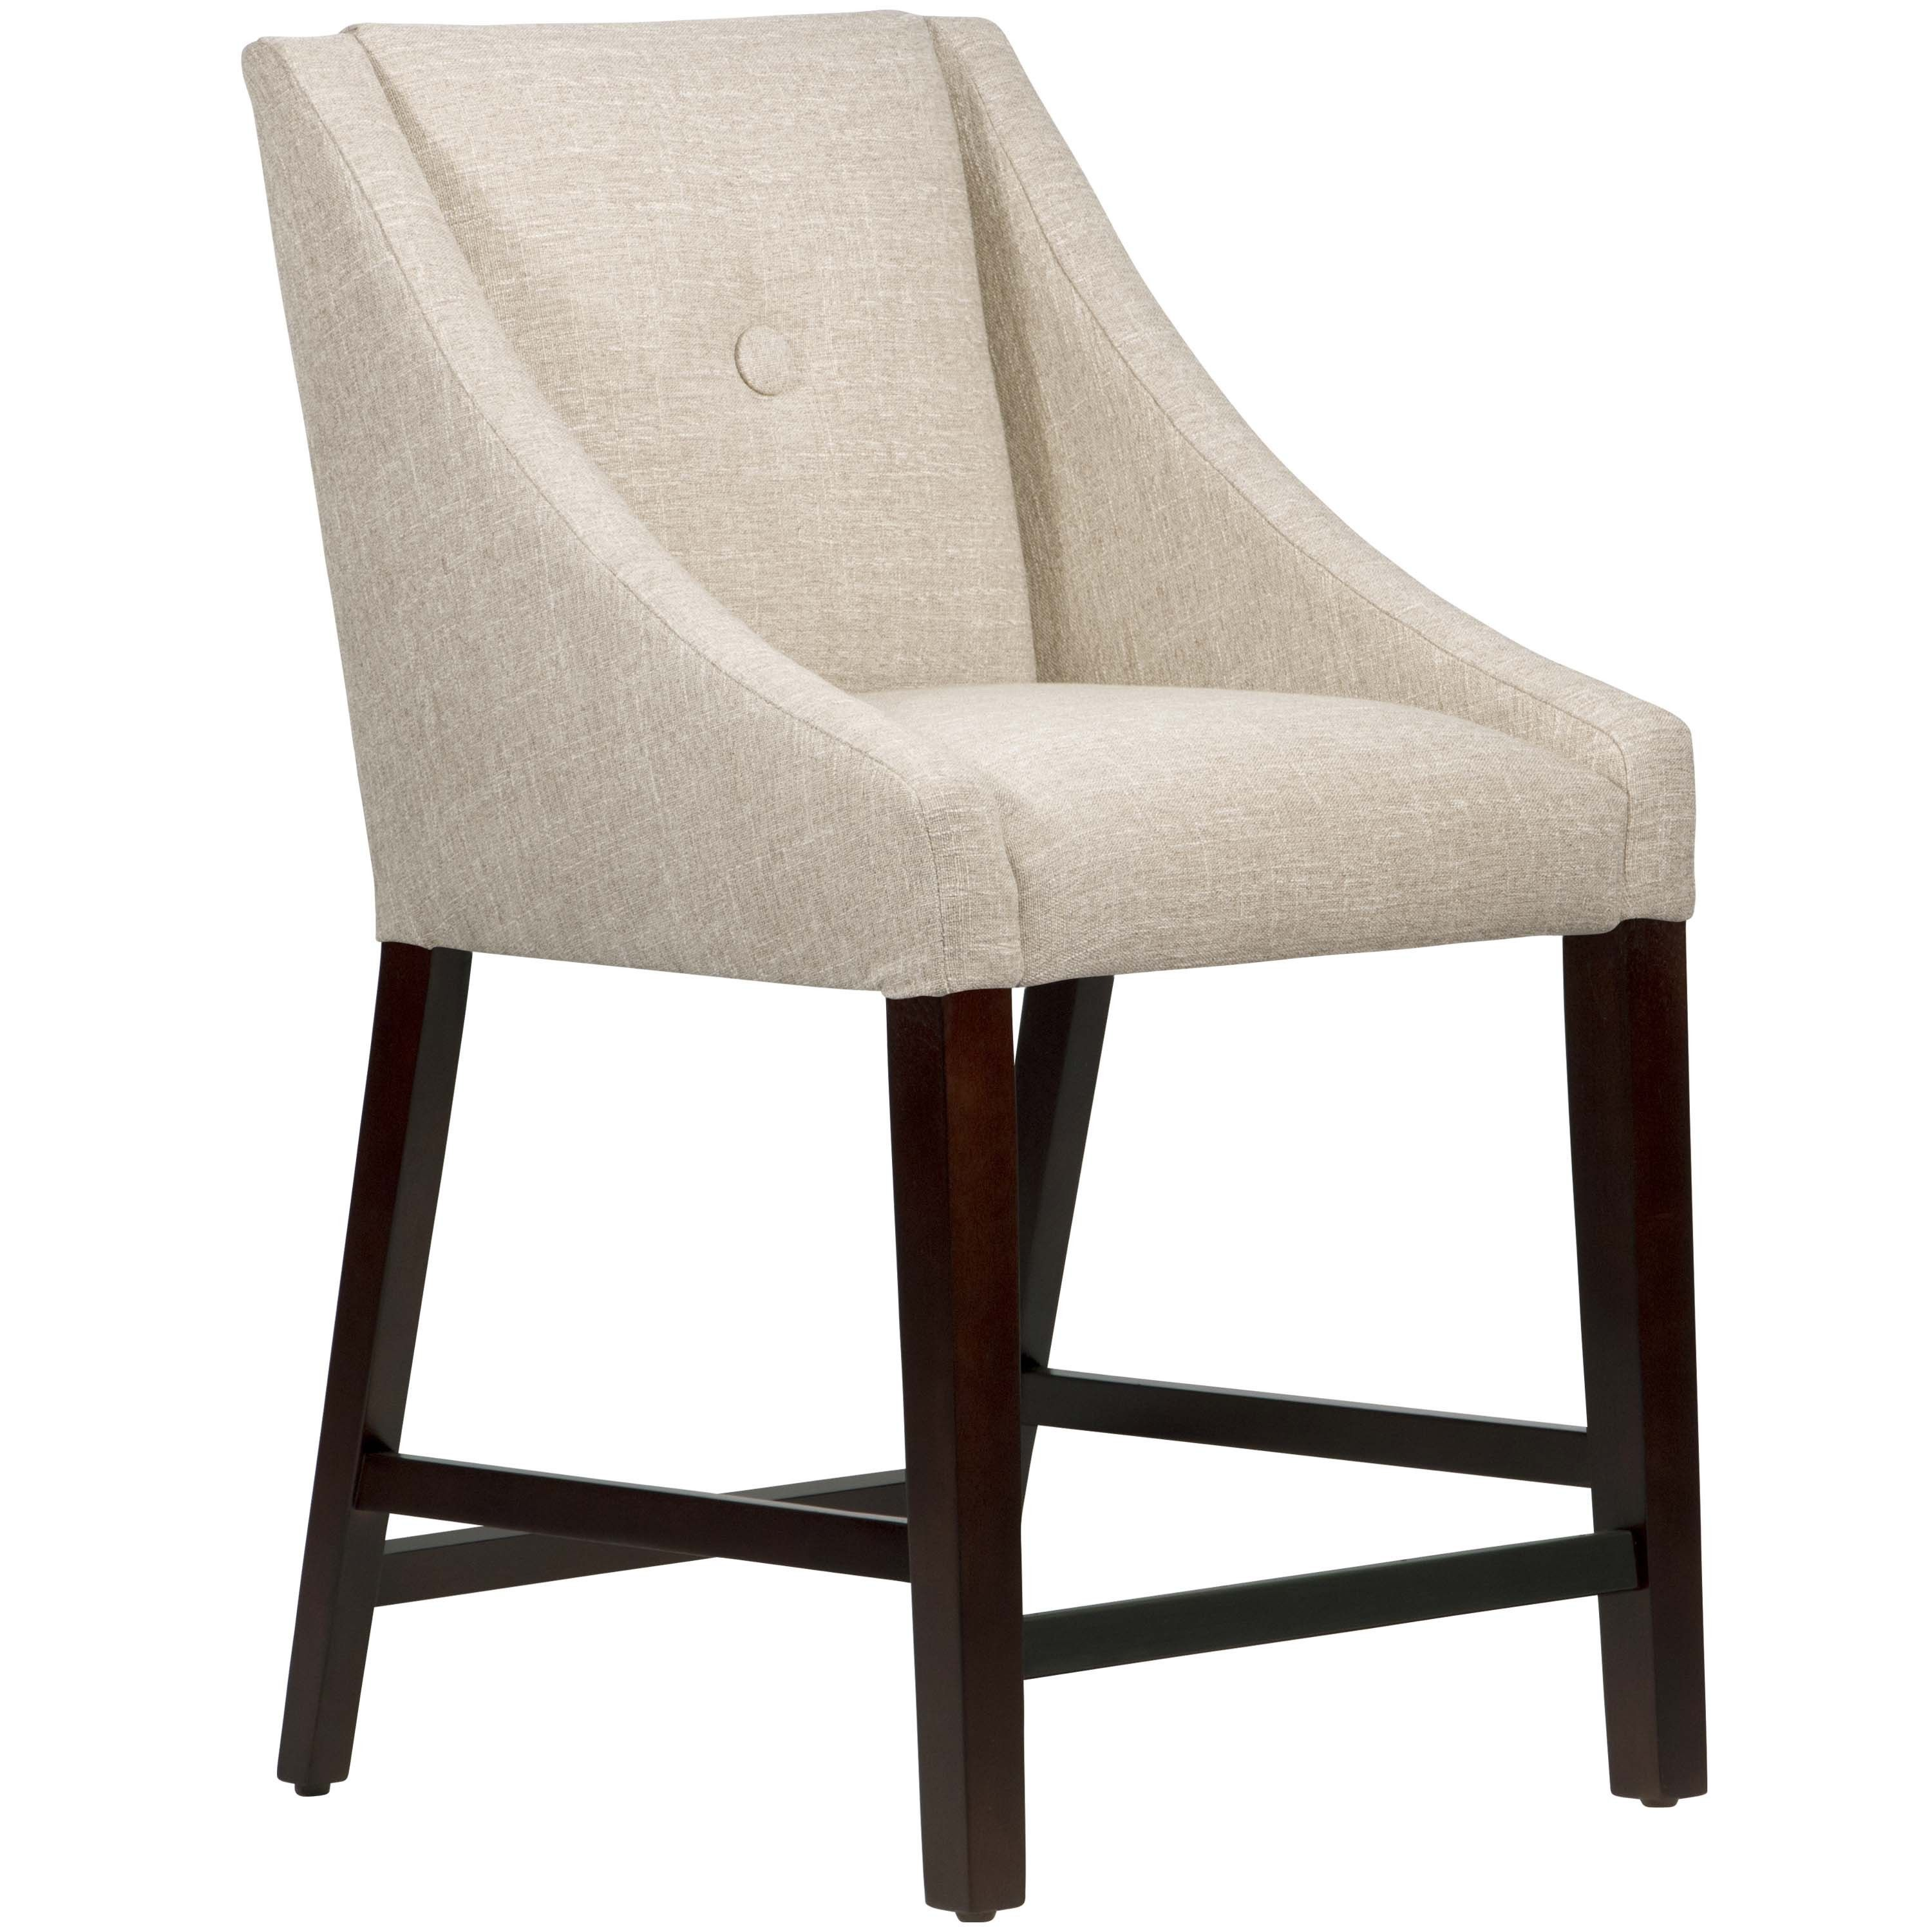 Skyline Furniture Hartley Moonstone Button Swoop Counter Stool